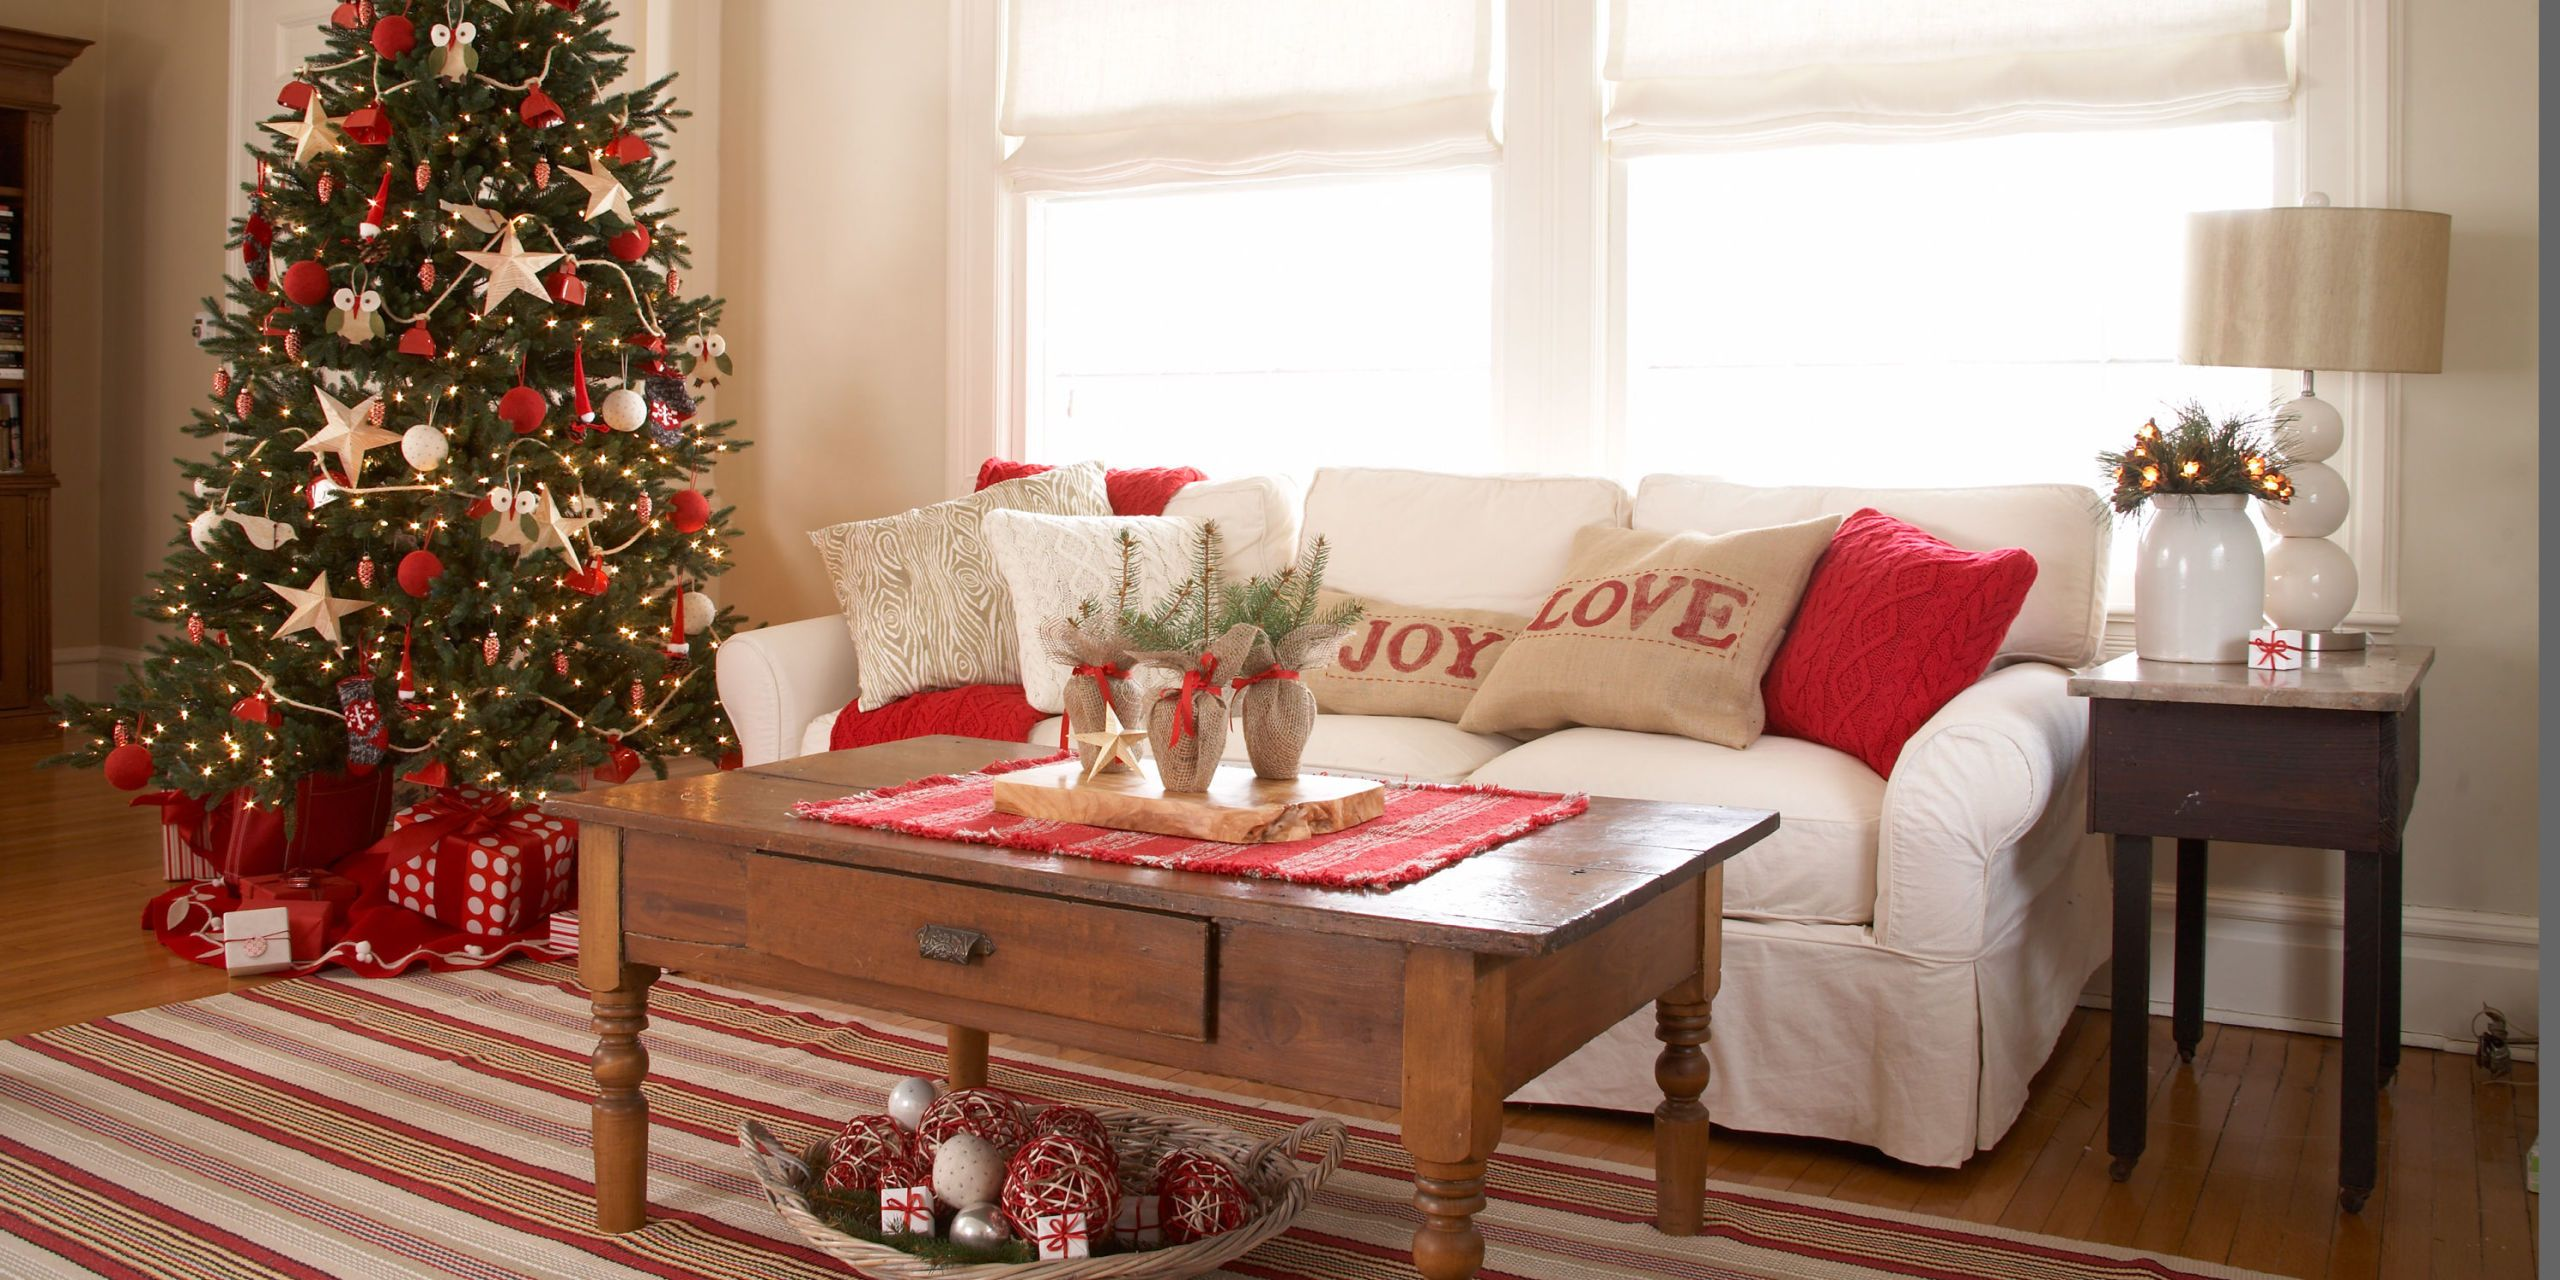 image & 47 Easy DIY Christmas Decorations - Homemade Ideas for Holiday ...